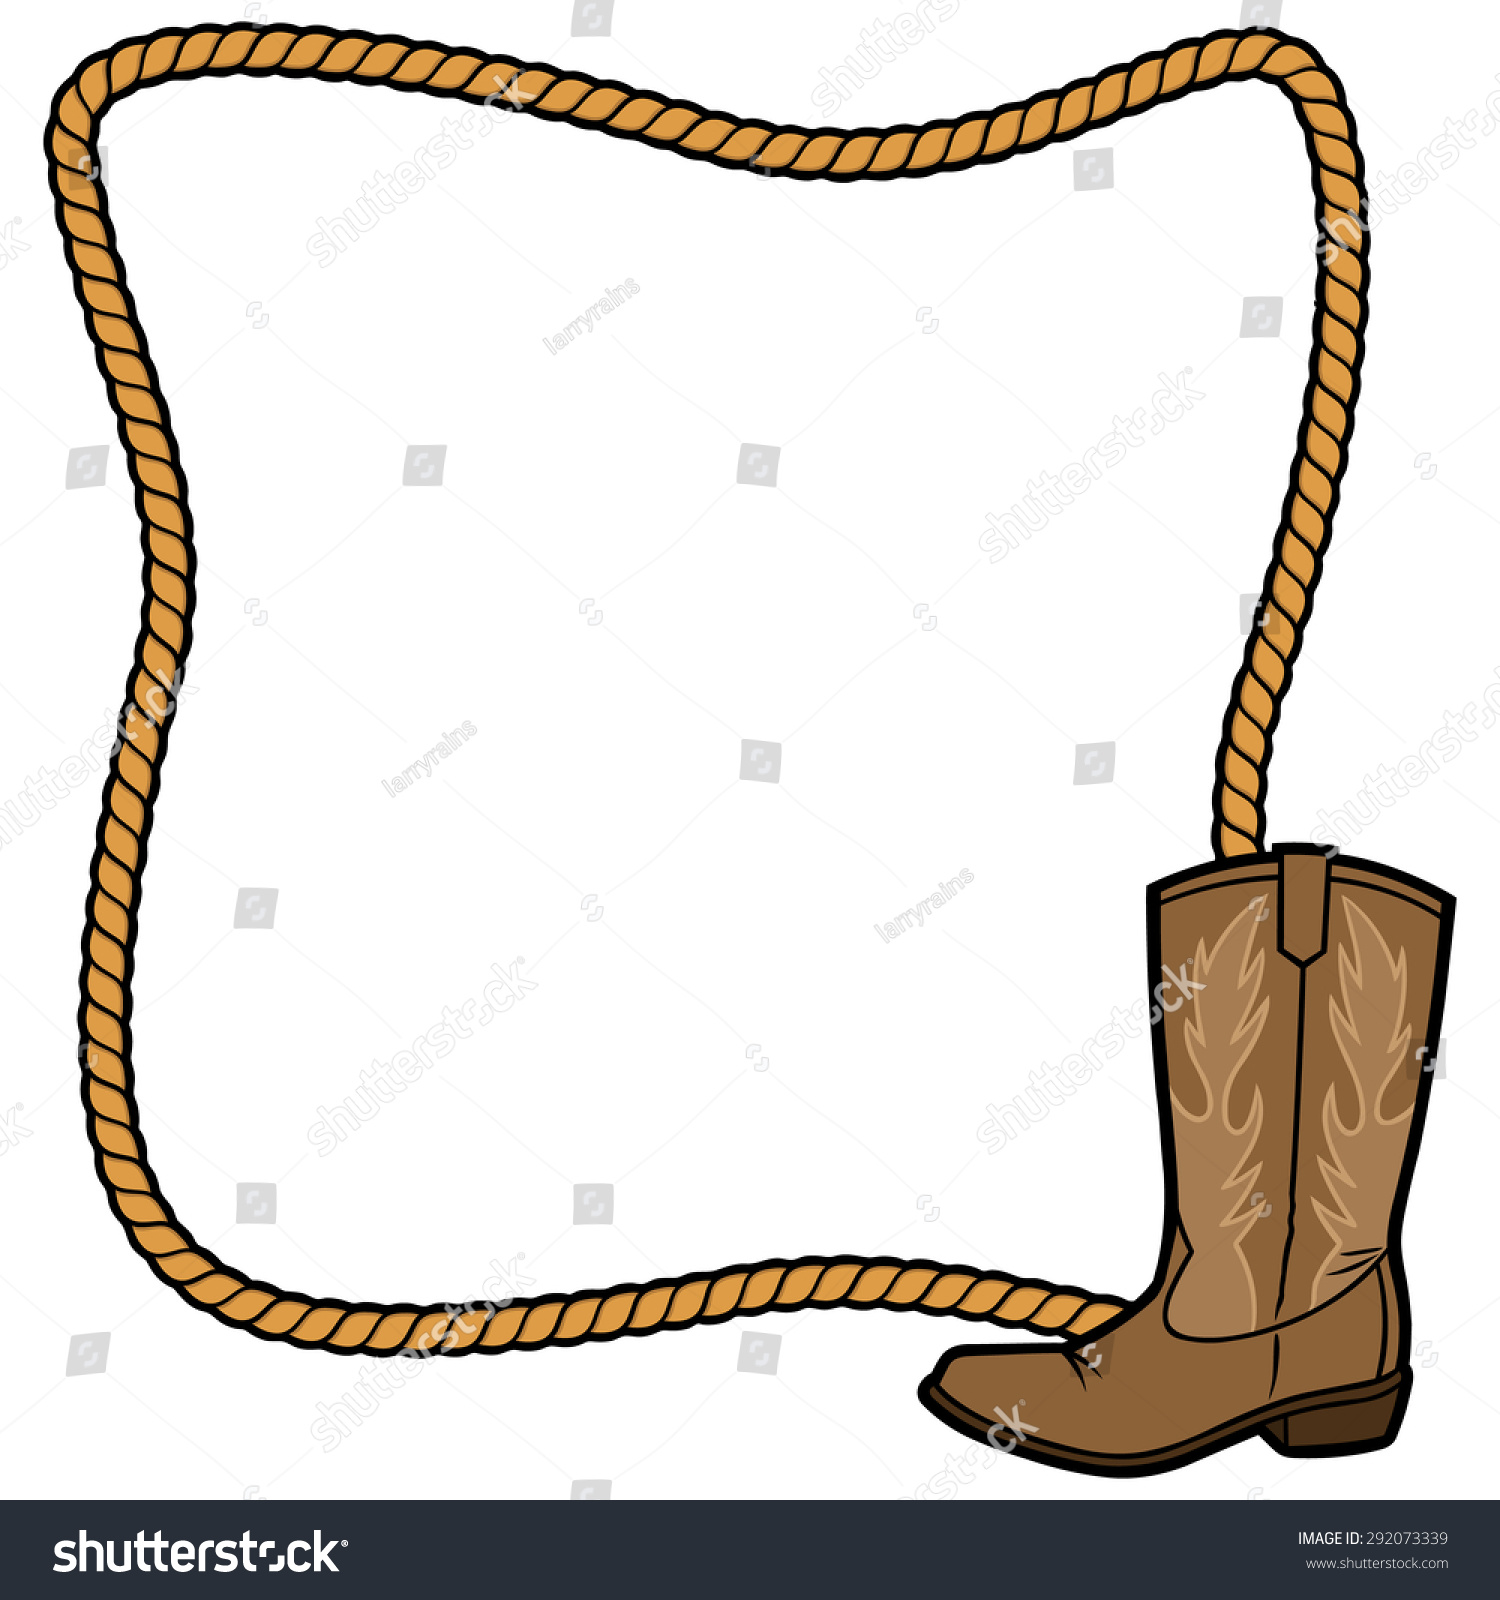 rope frame and cowboy boot